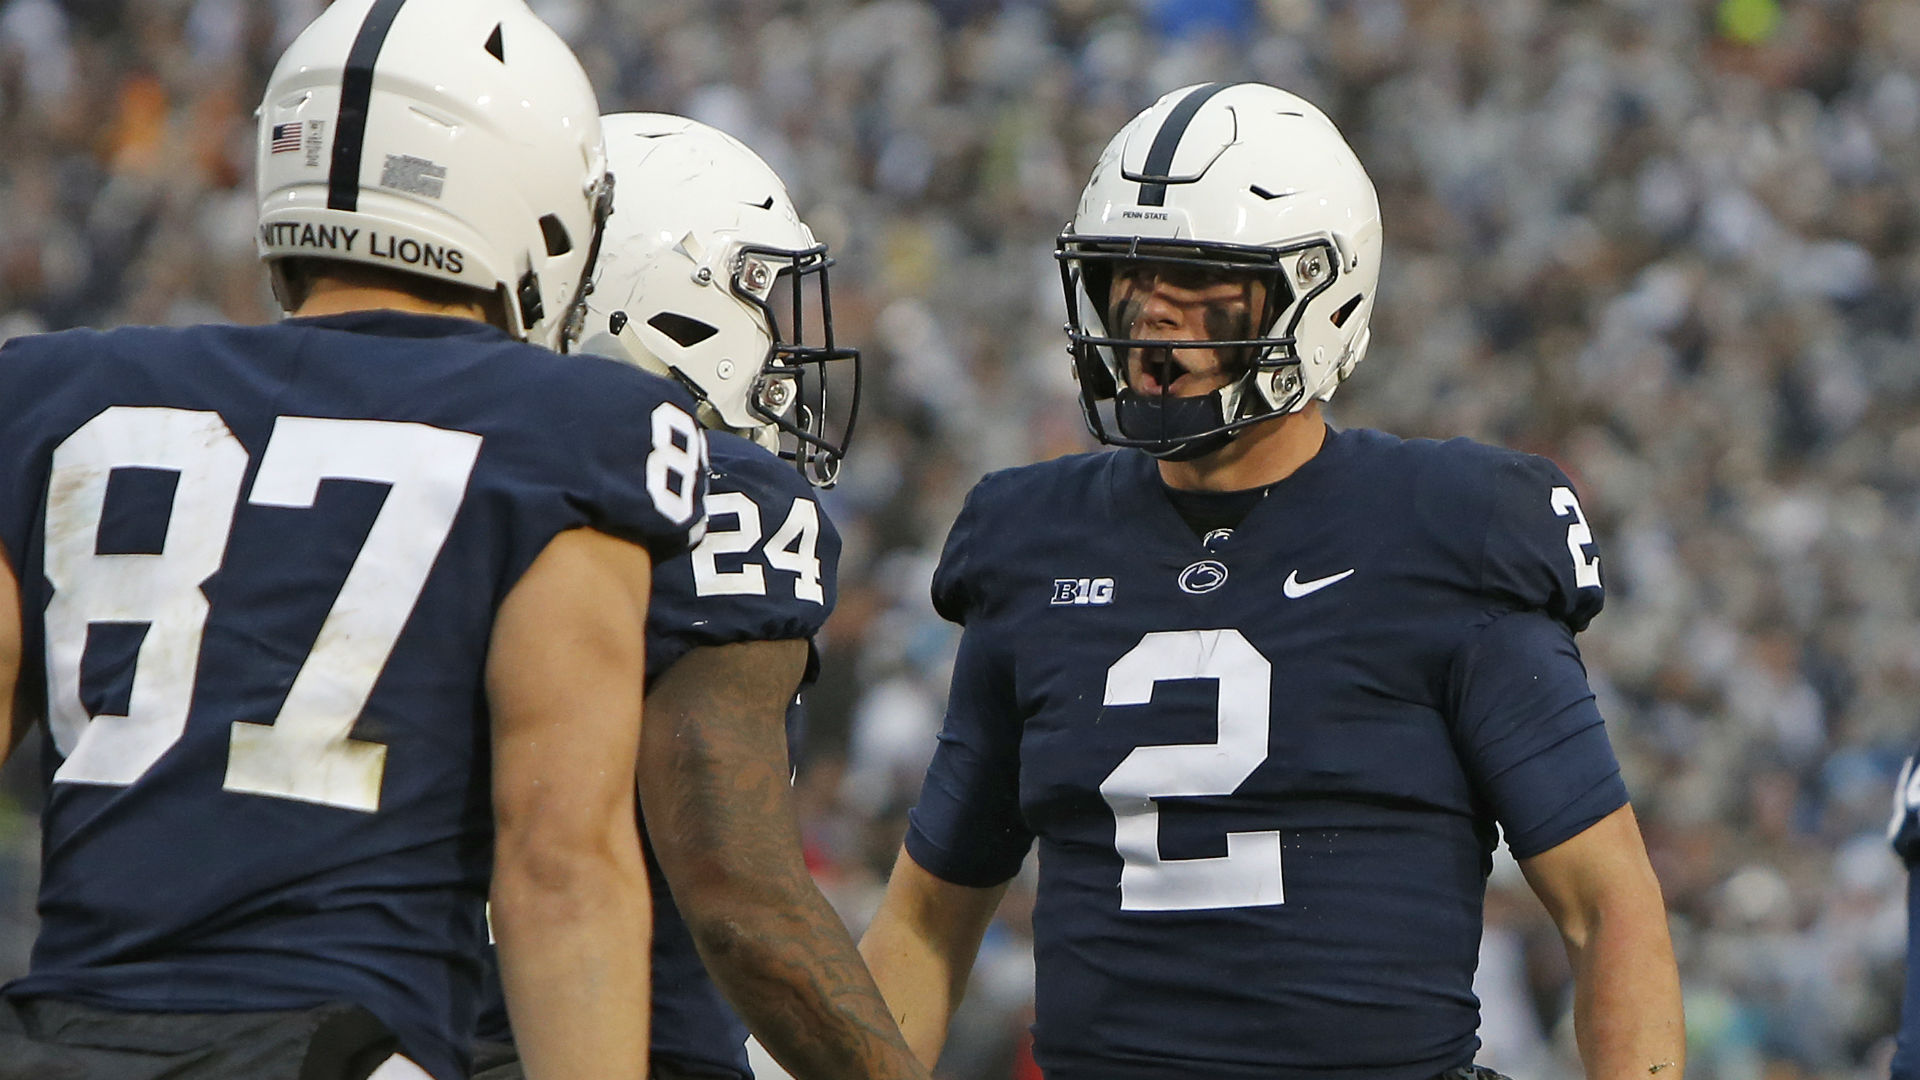 Penn State QB returns to game, leaves again